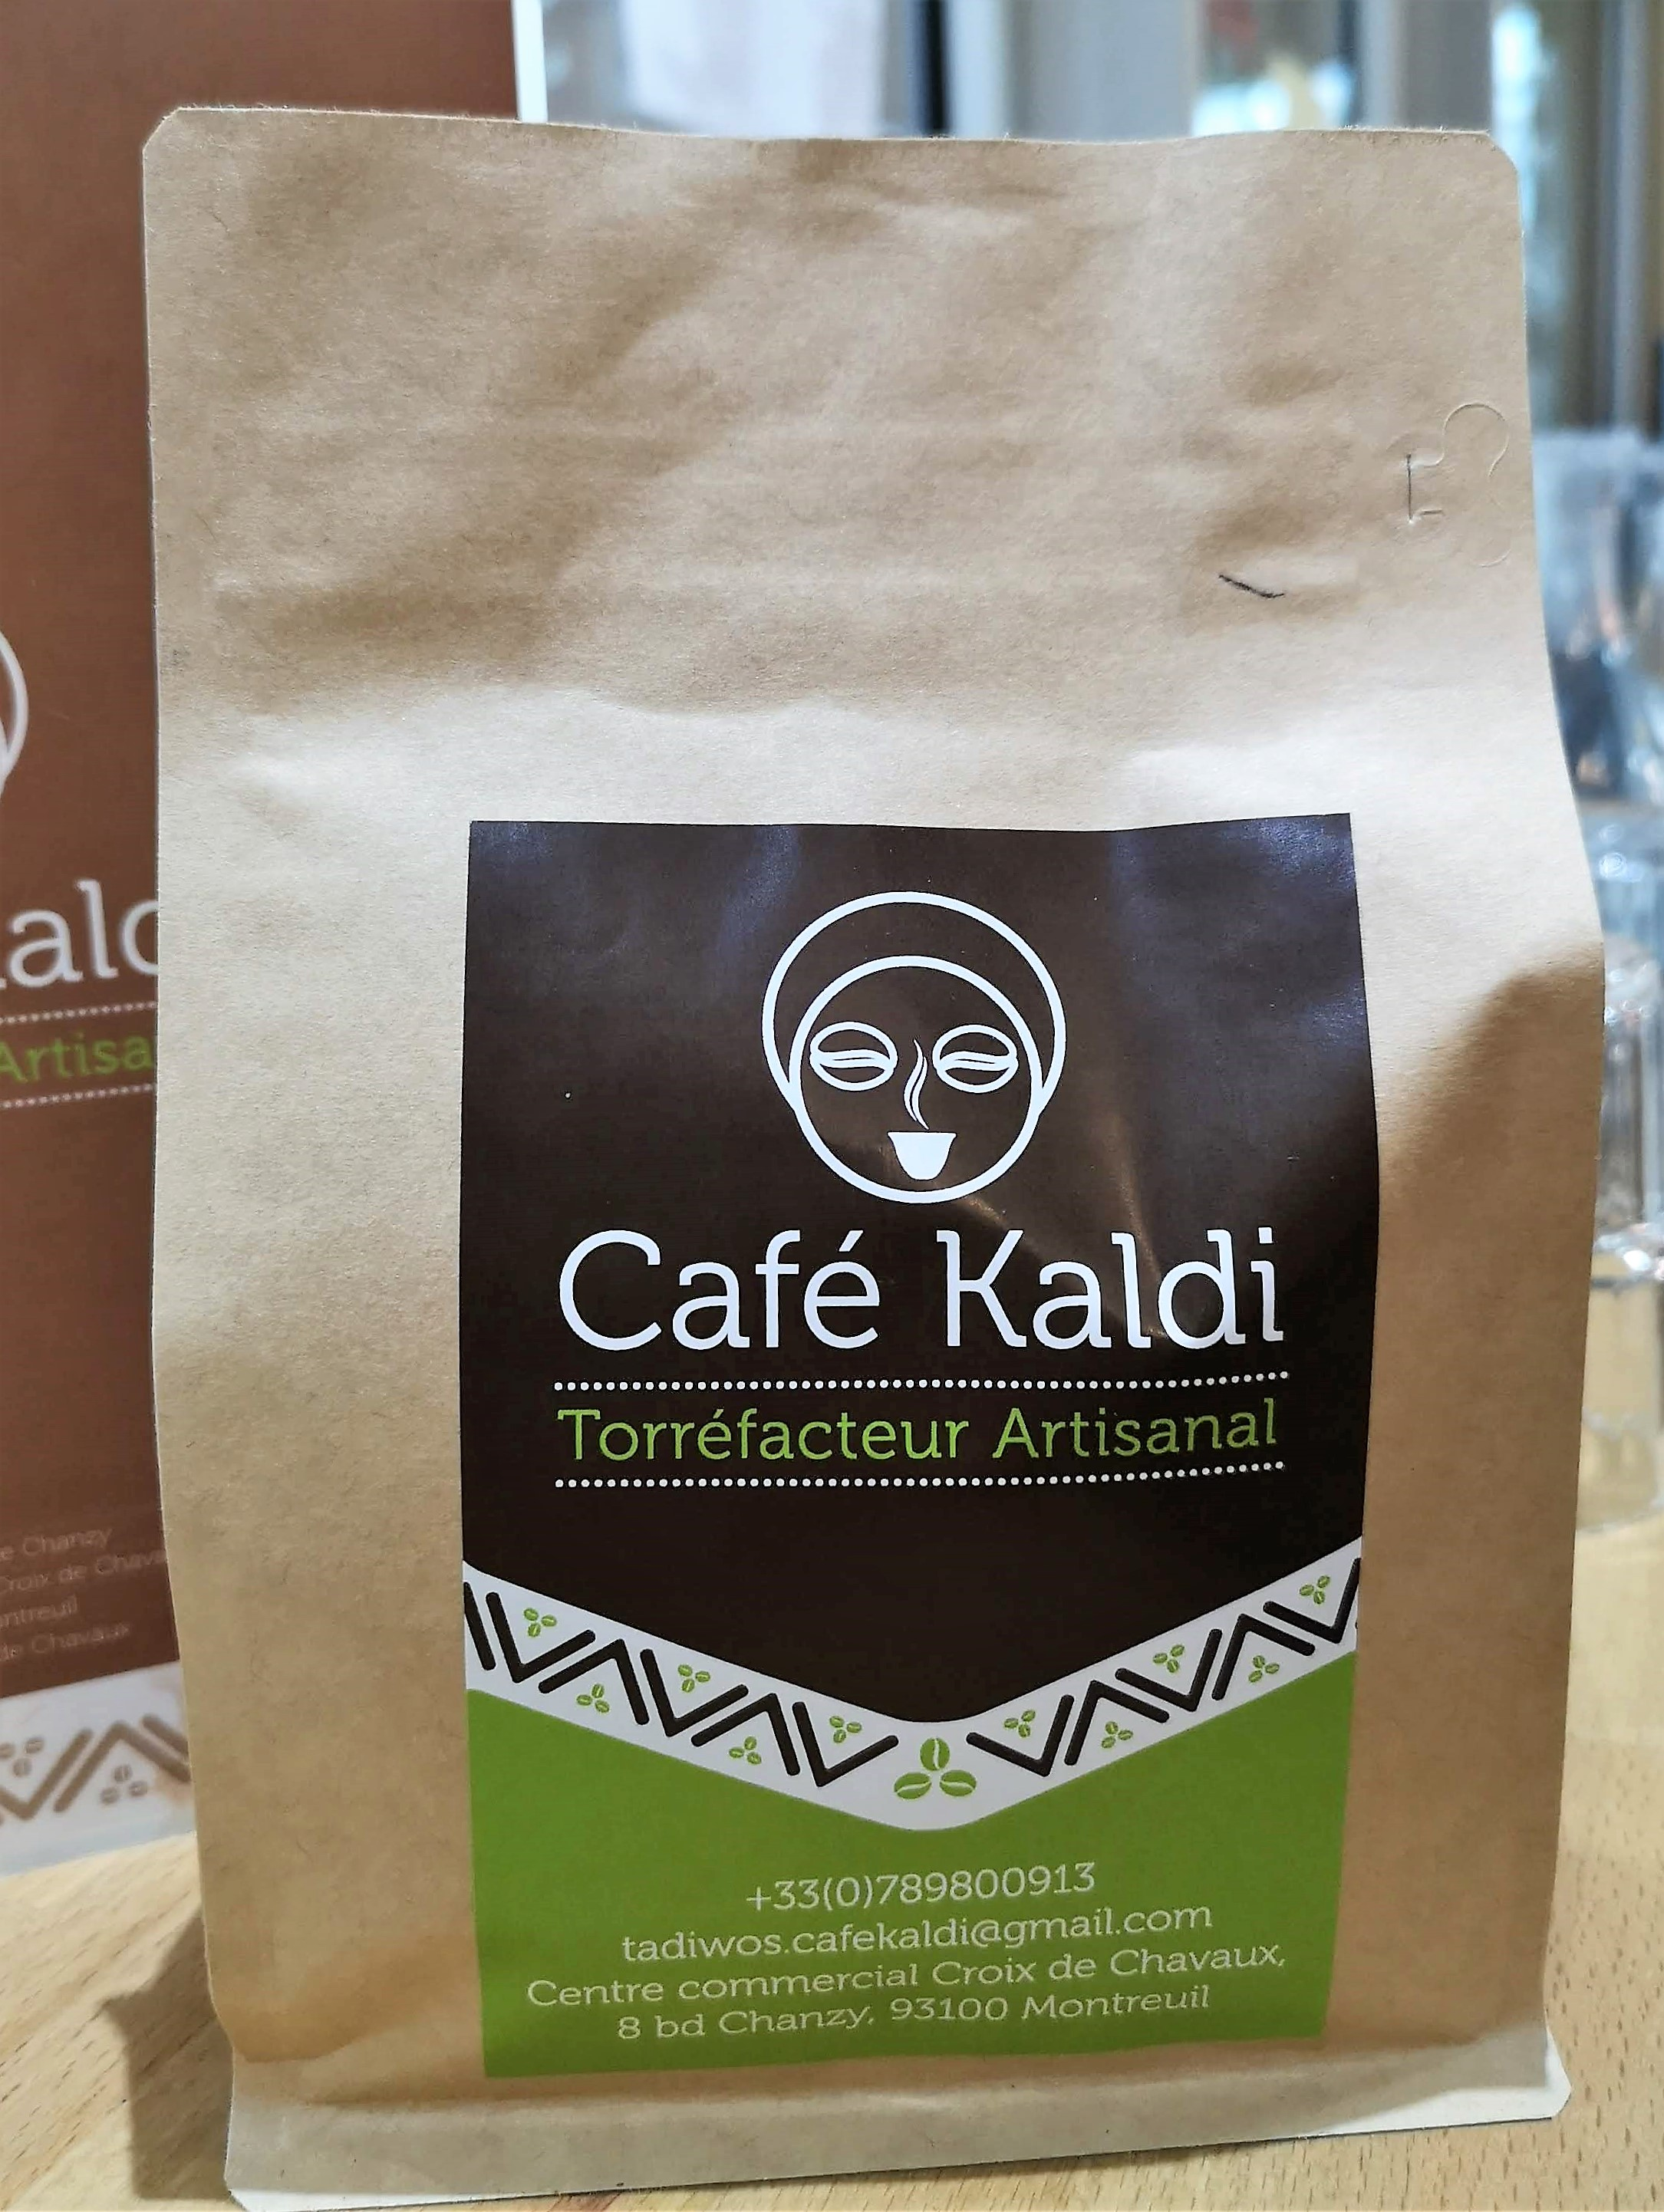 Roasted coffee by Café Kaldi